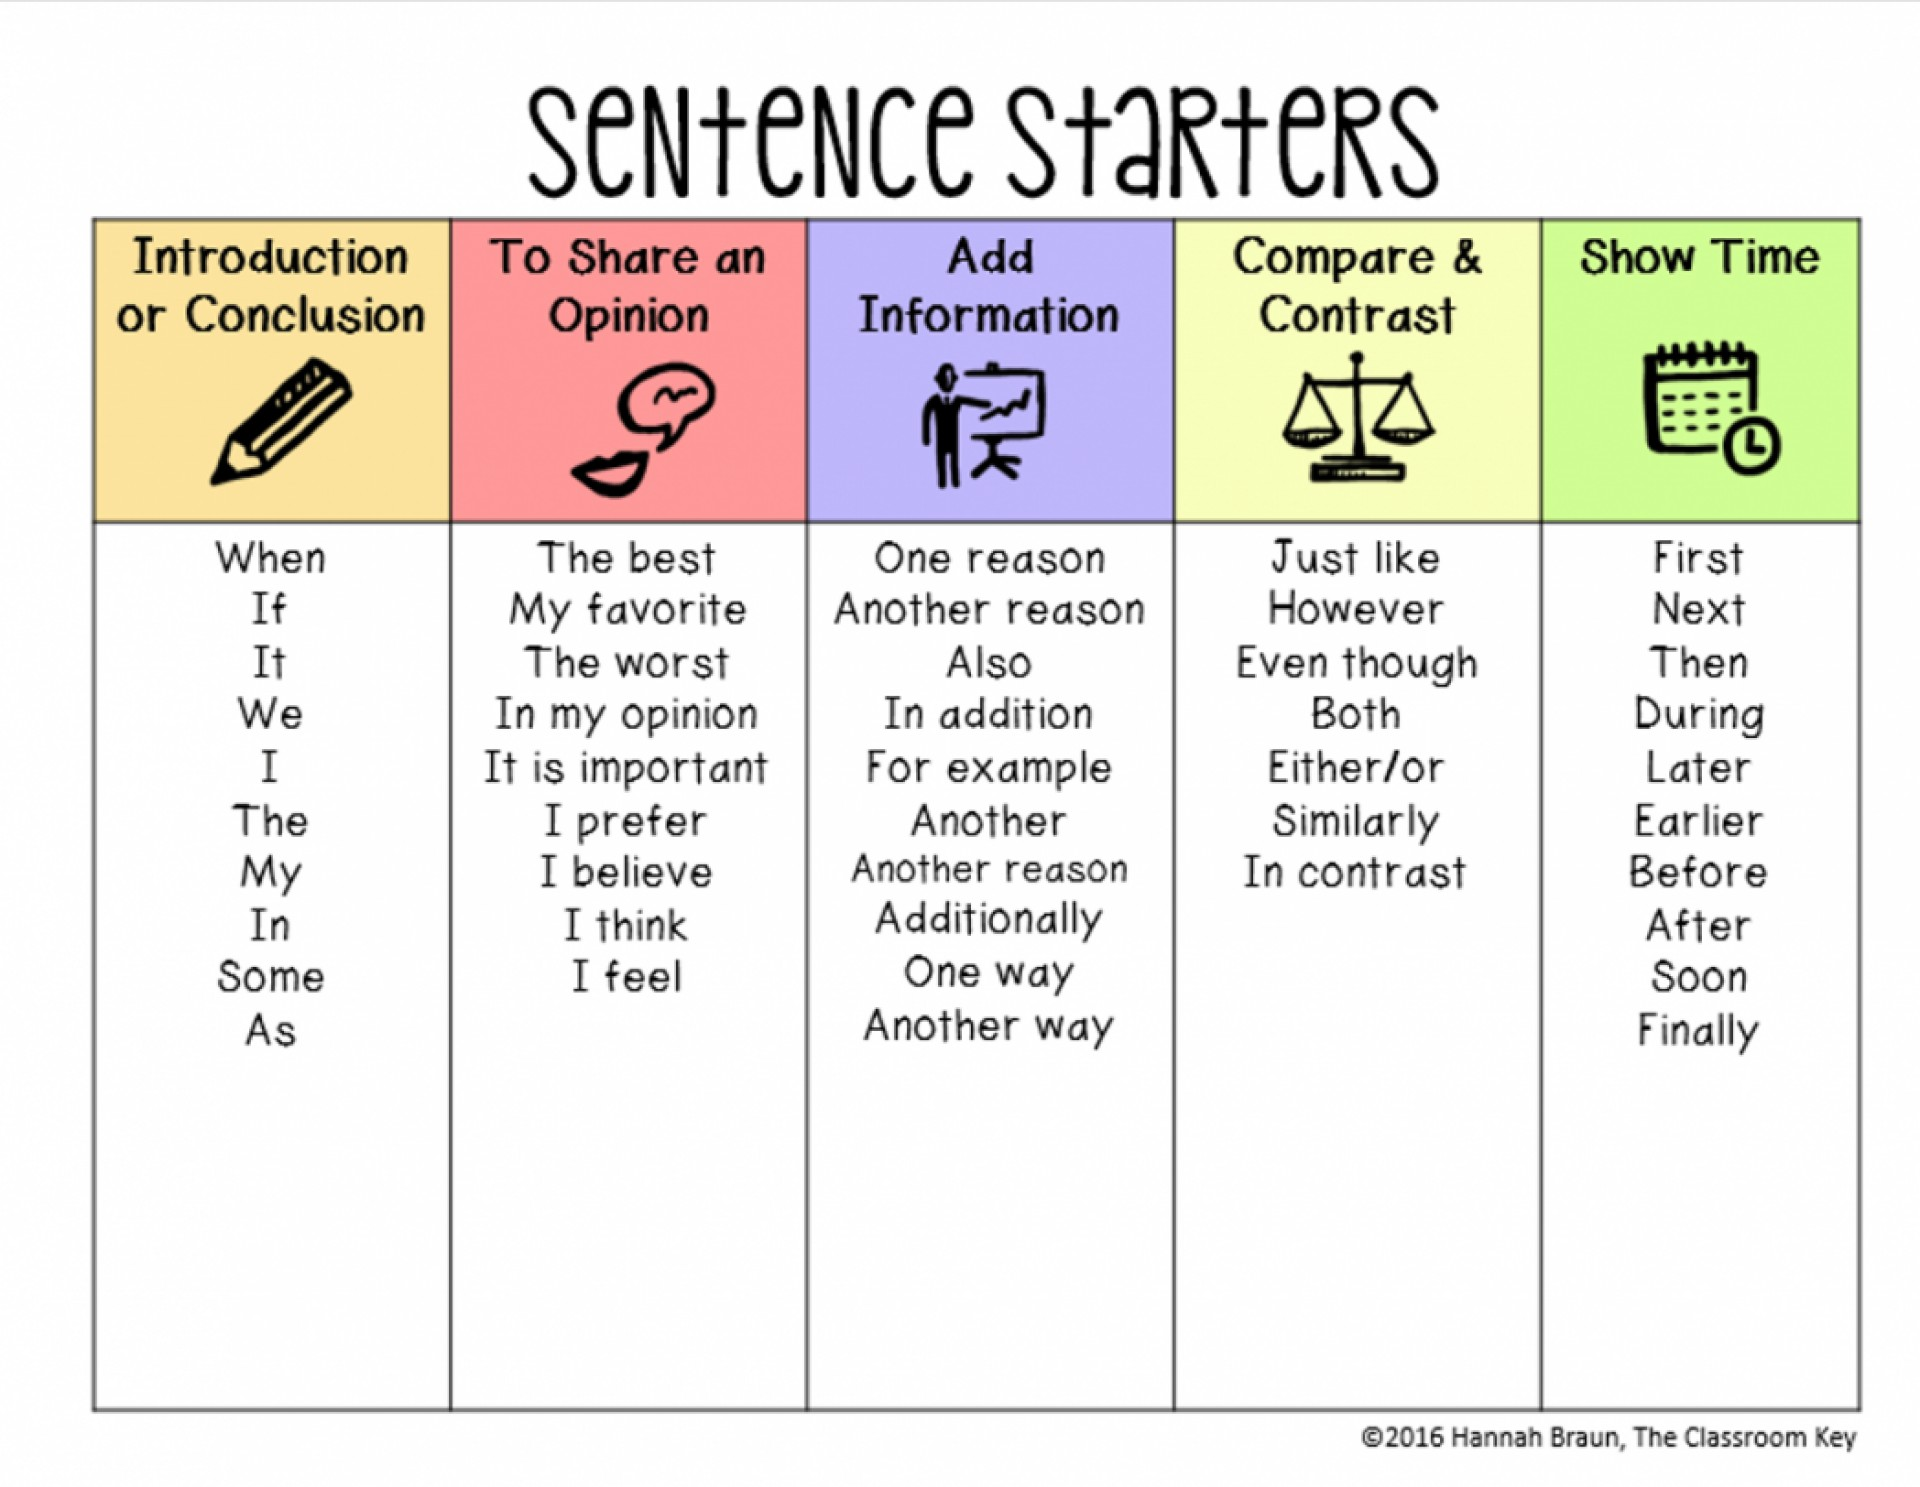 Full Size of Sentence Starters For Introduction Sentences To Start An Essay Narrative Examples Speedy